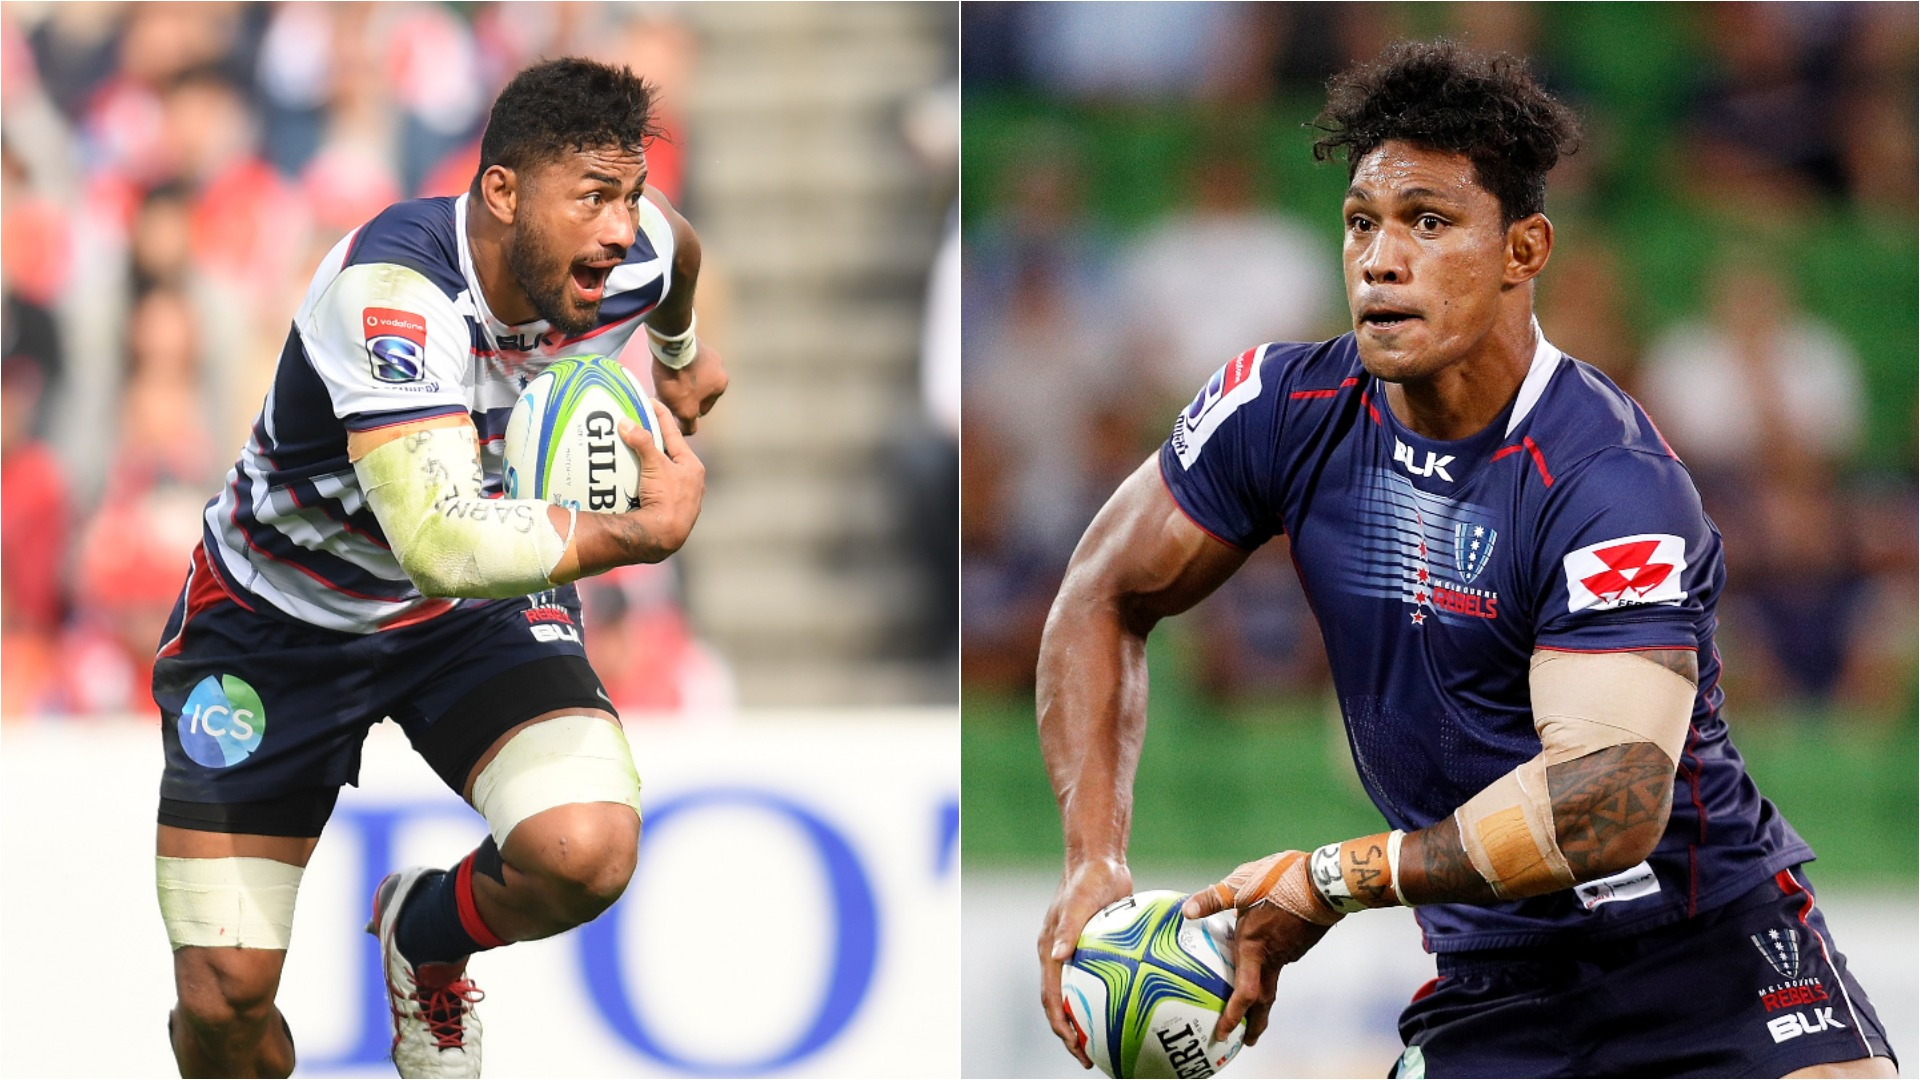 Melbourne Rebels fine Amanaki Mafi and Lopeti Timani after alleged brawl